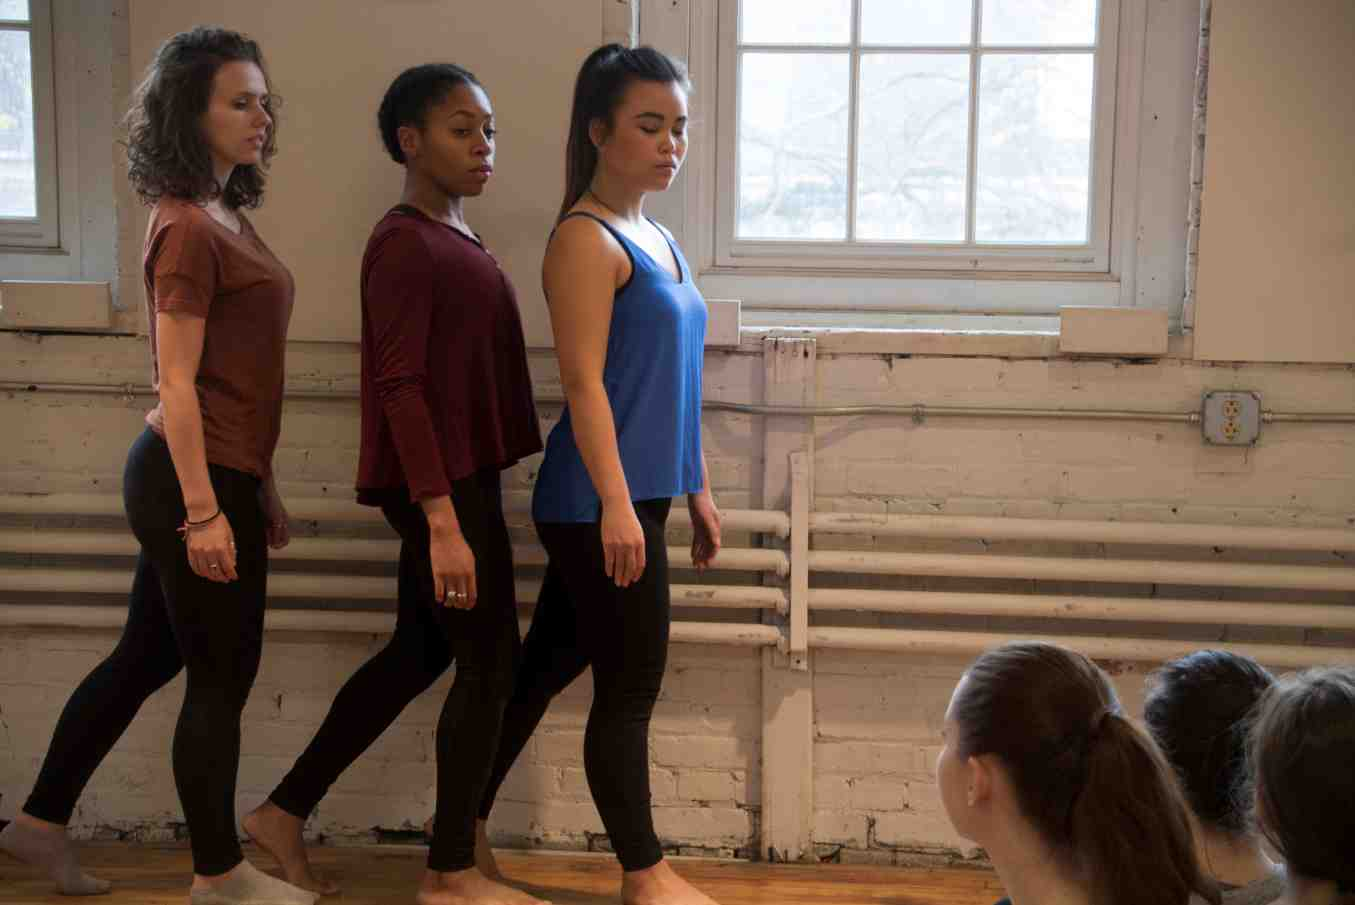 Dancers rehearse choreography for the final Weiss Prize performance entitled